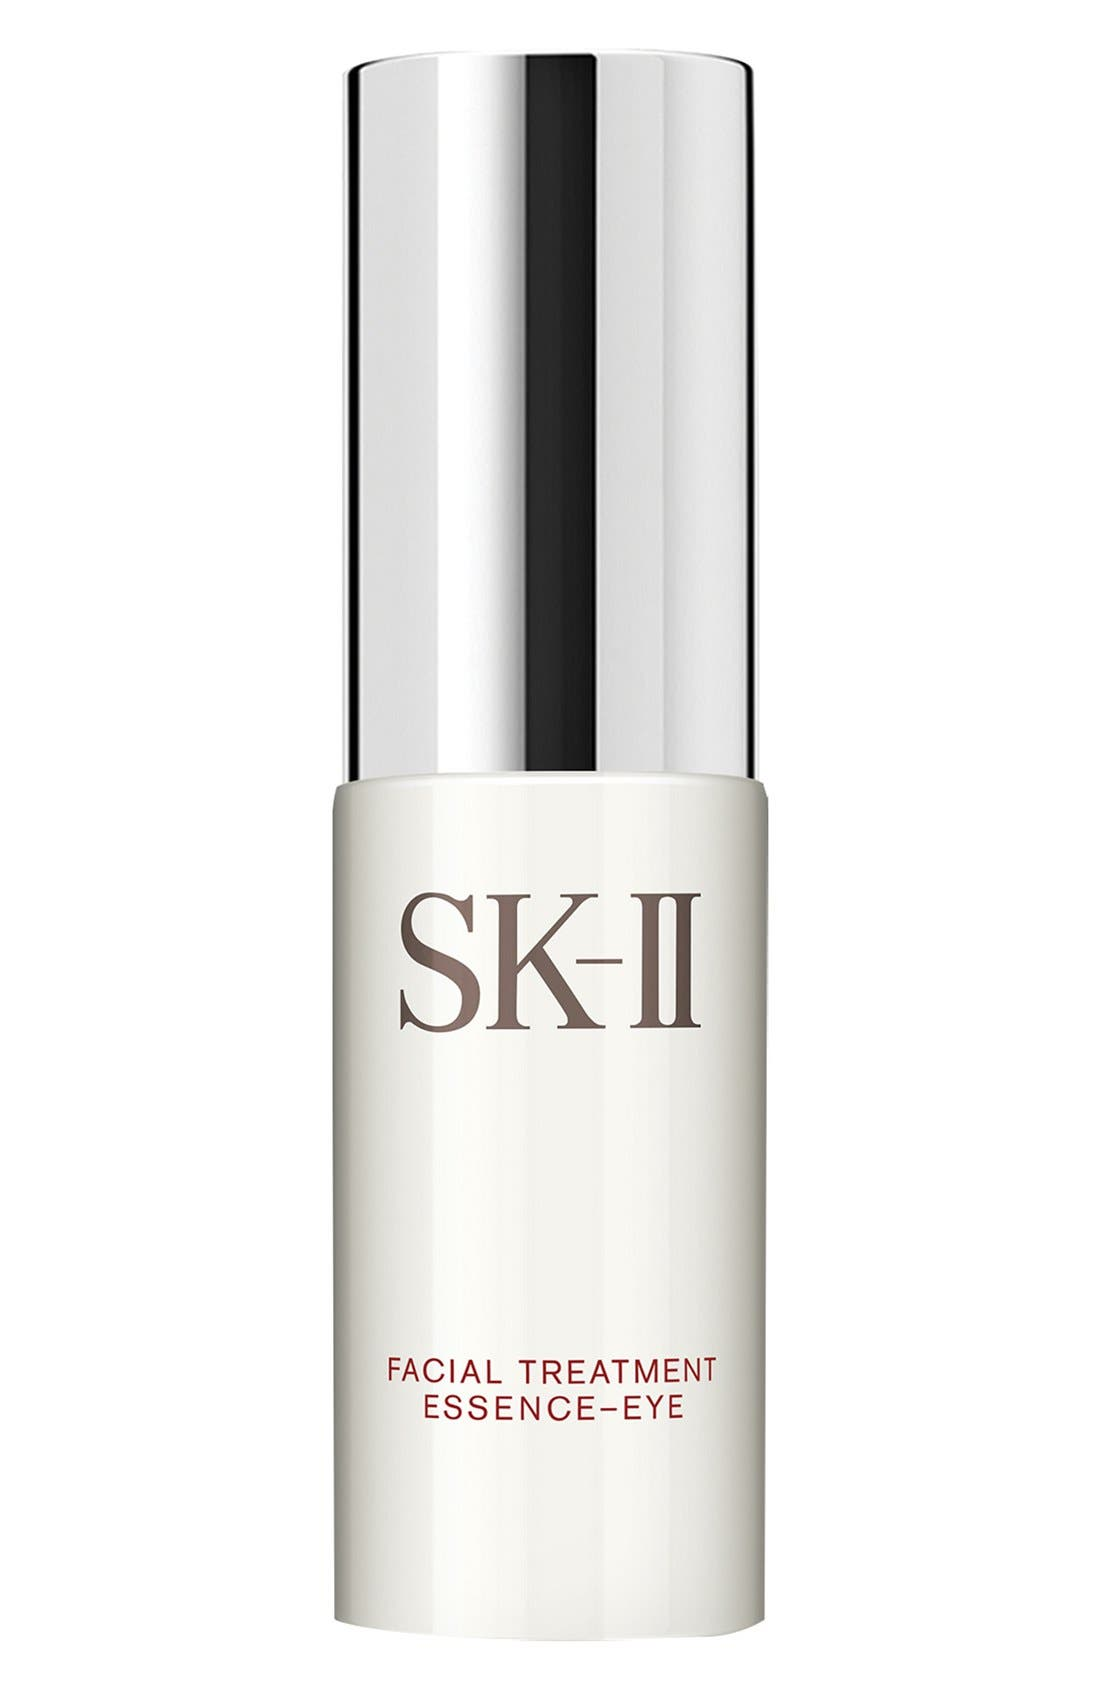 SK-II Facial Treatment Essence-Eye